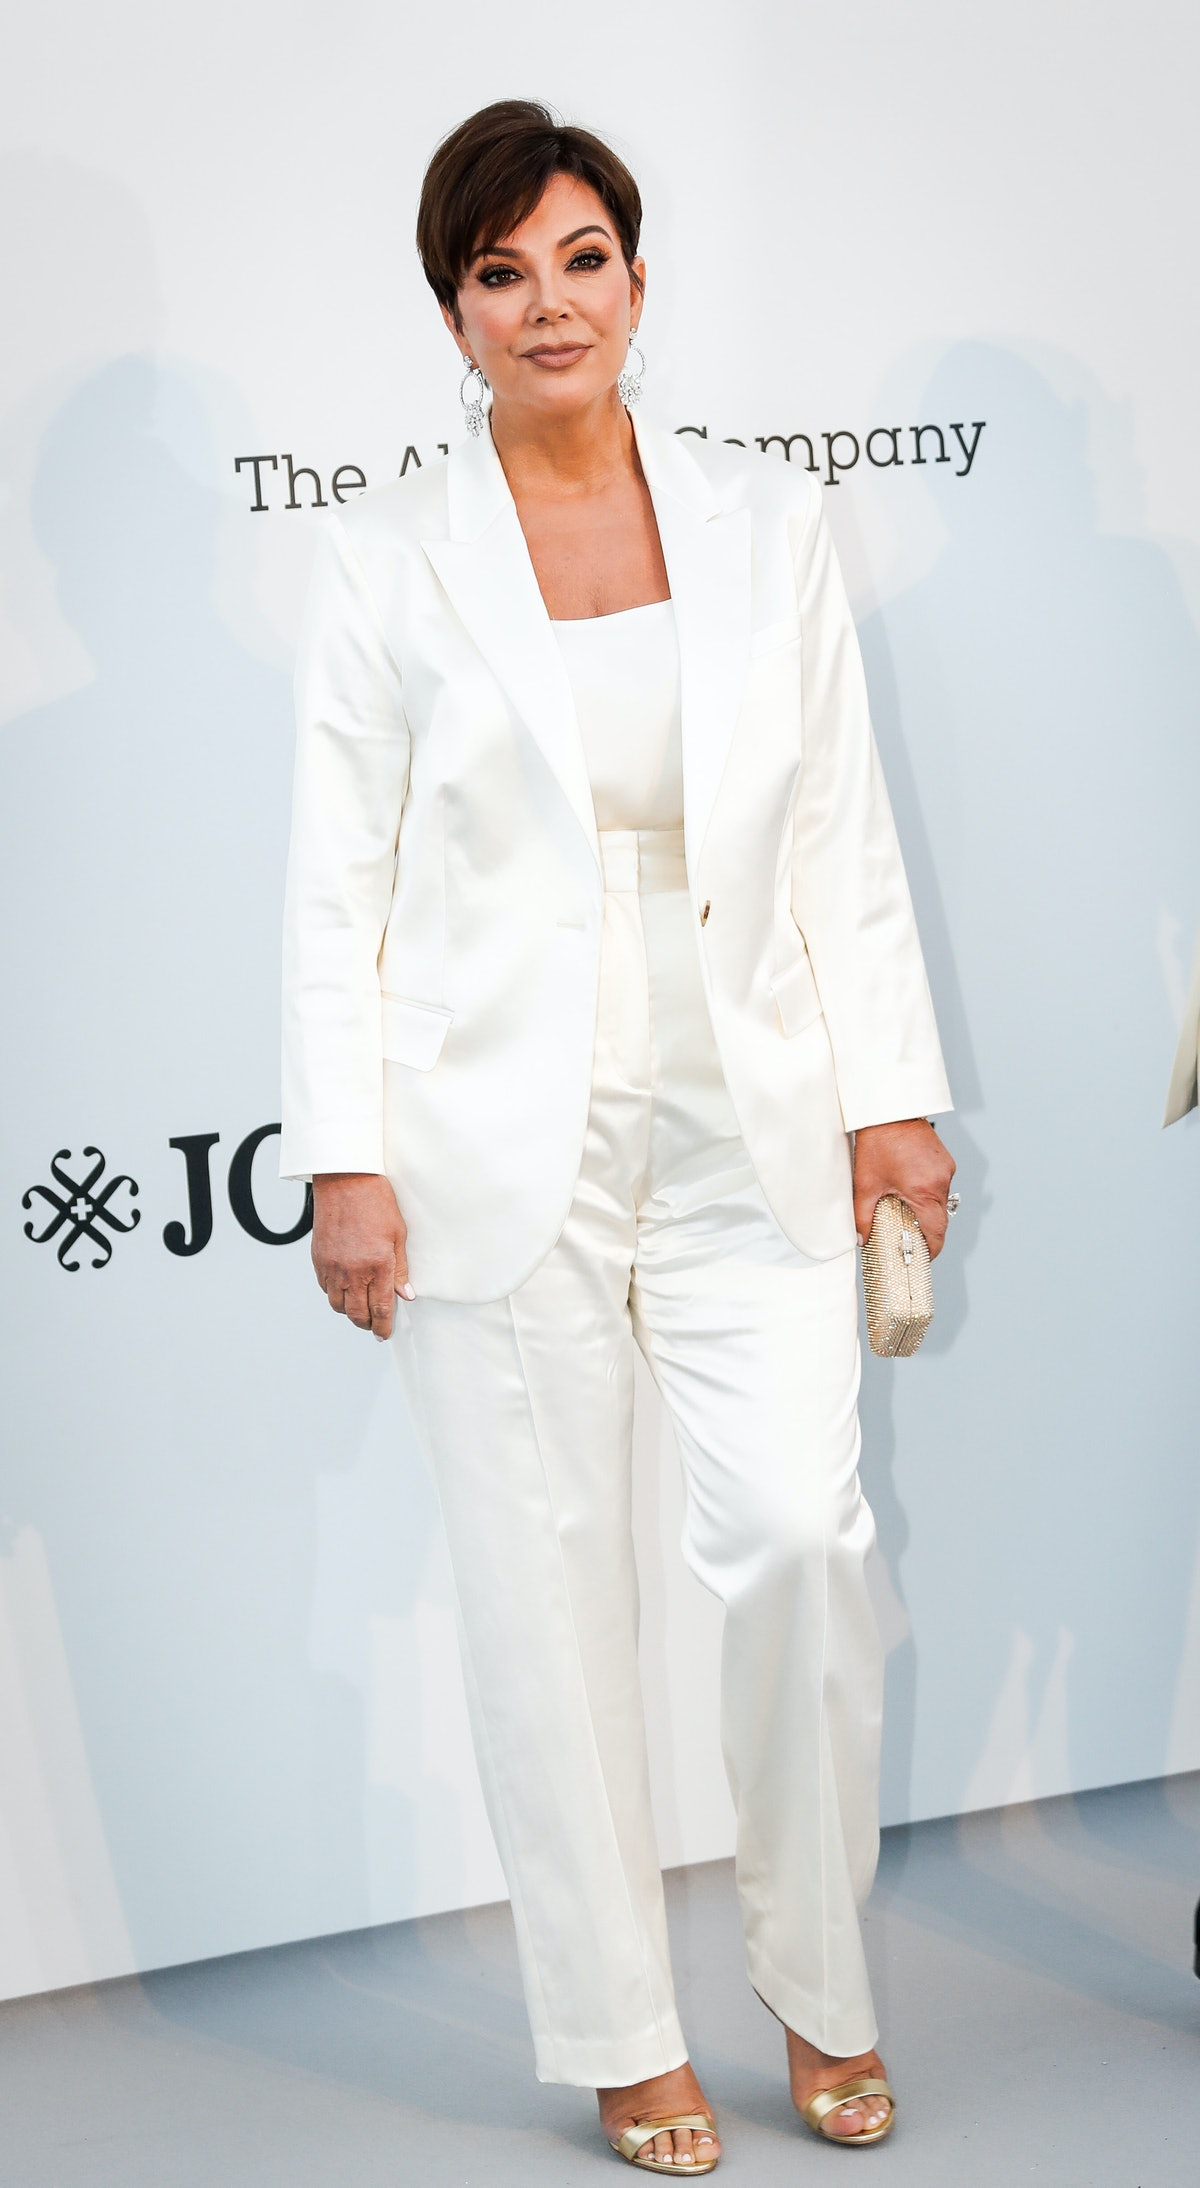 CAP D'ANTIBES, FRANCE - MAY 23: Kris Jenner attends the amfAR Cannes Gala 2019 at the Hotel du Cap-E...